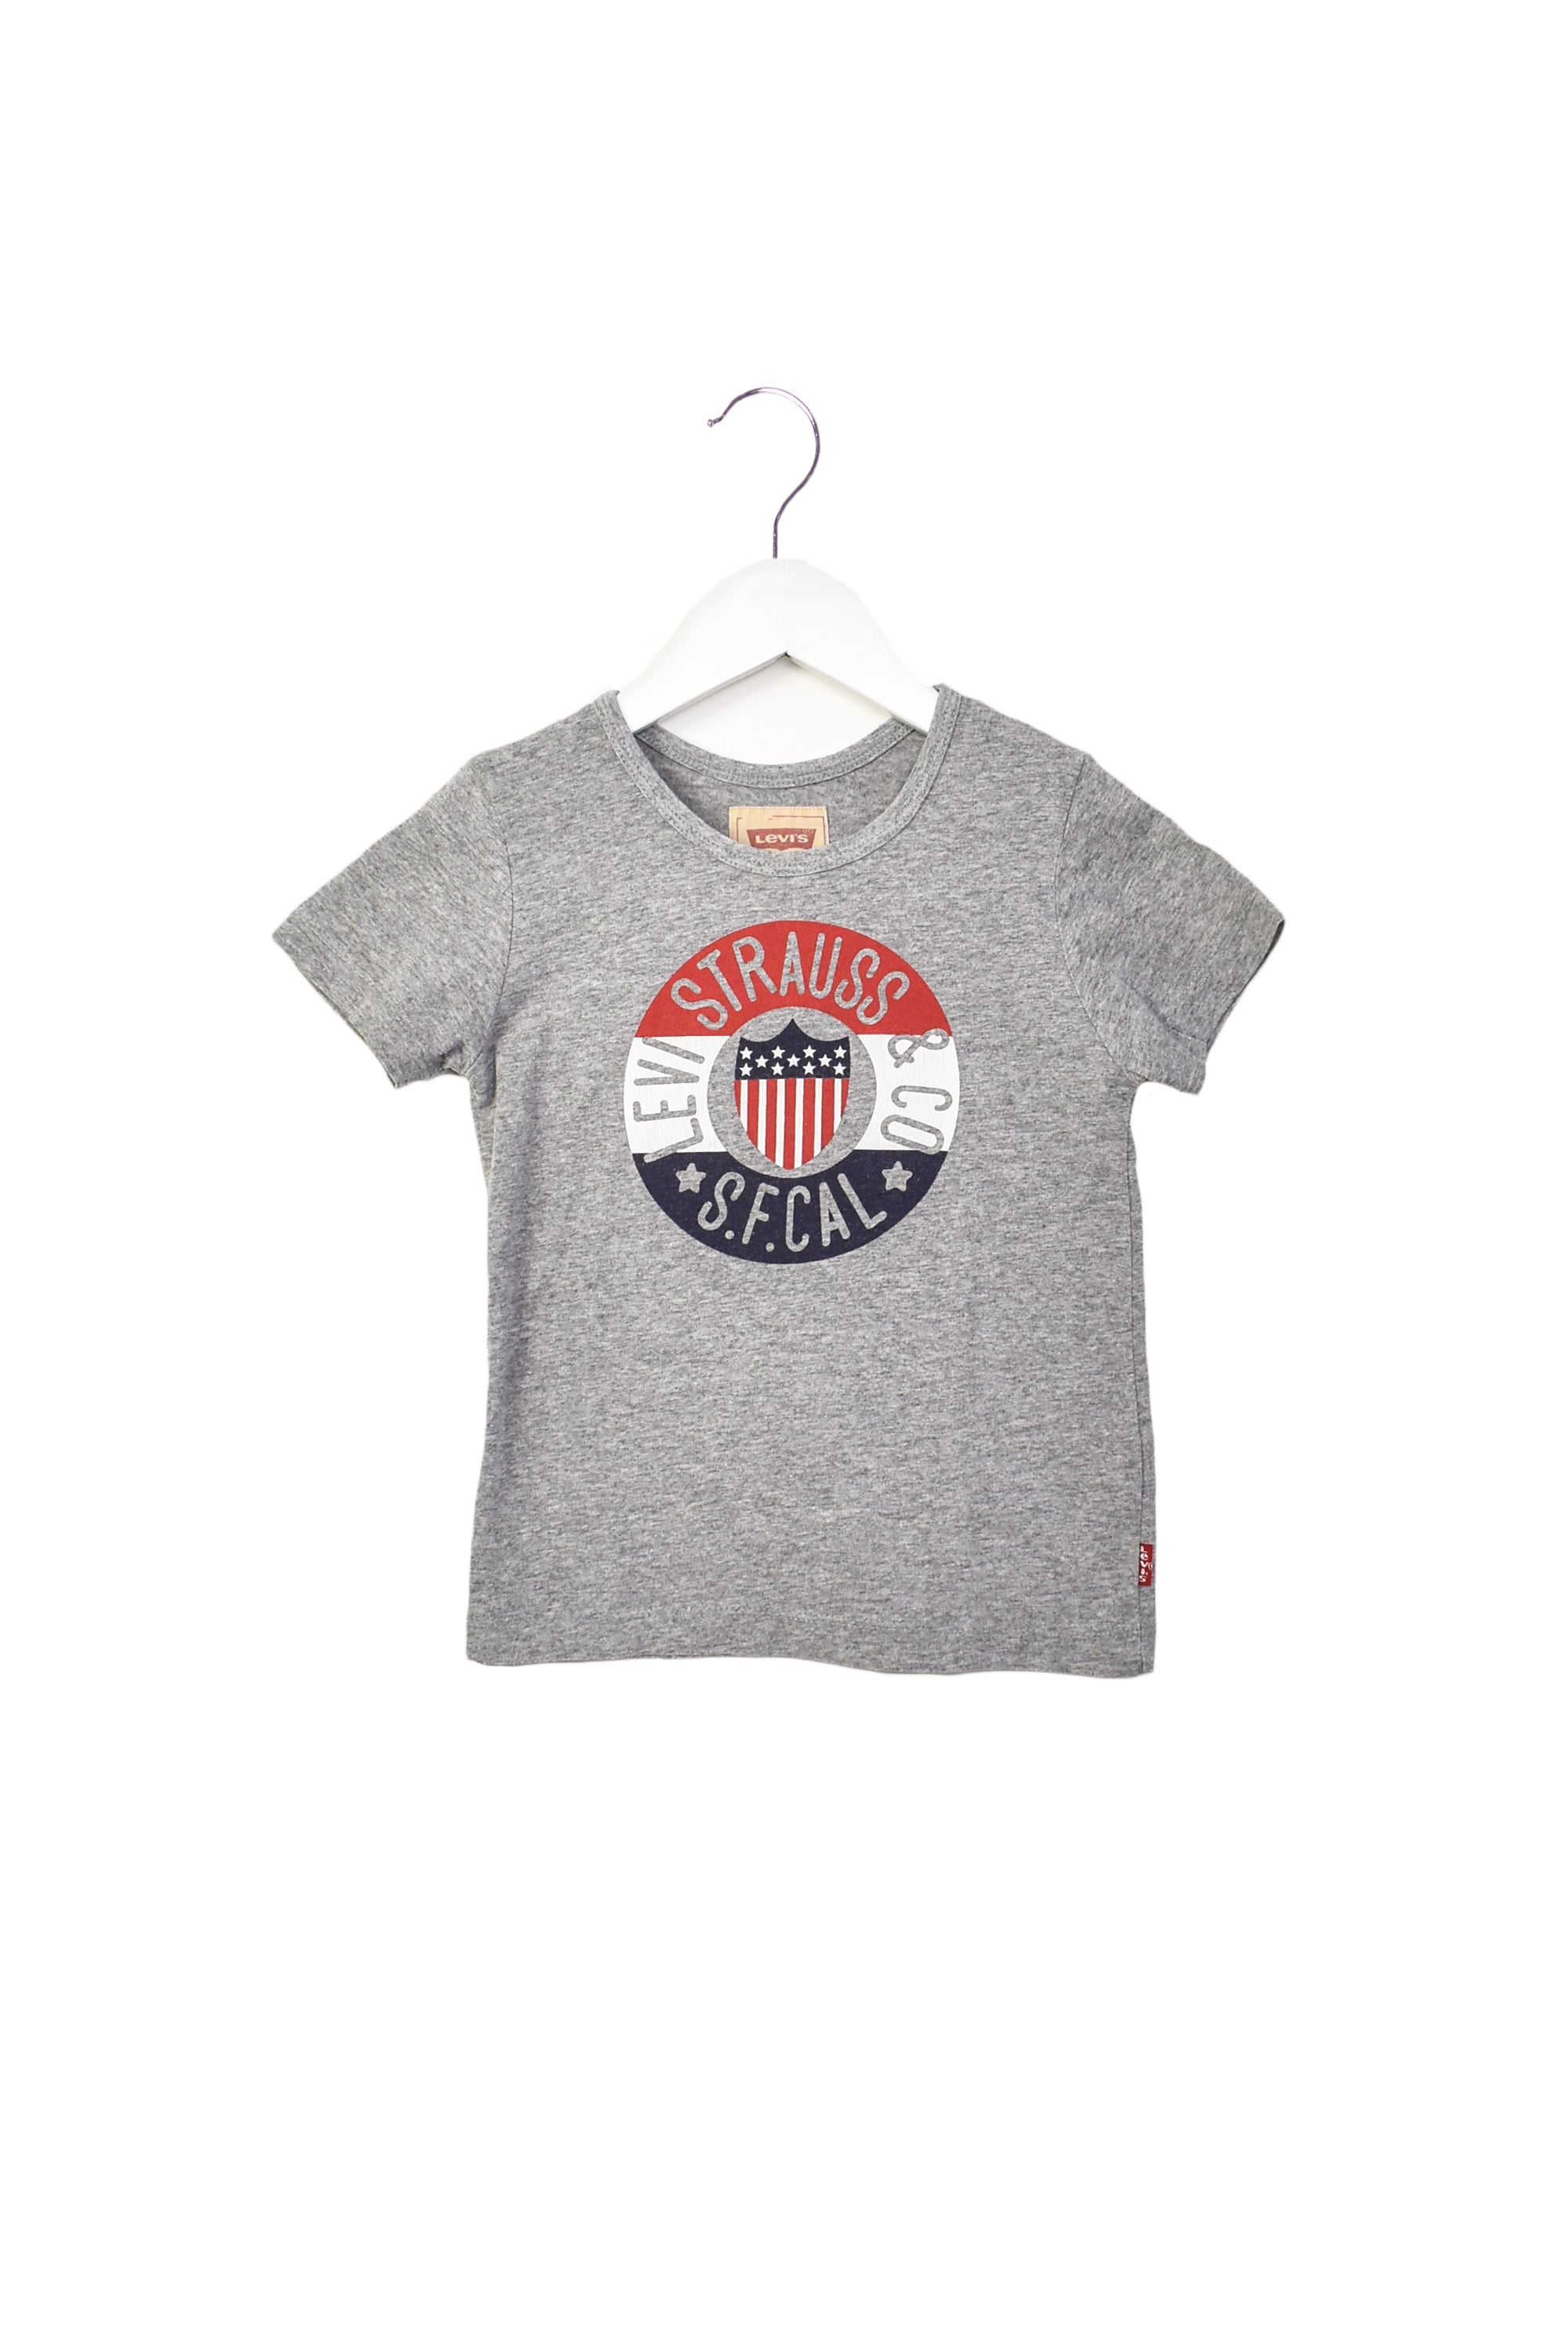 10013367 Levi's Kids ~ T-Shirt 4T at Retykle